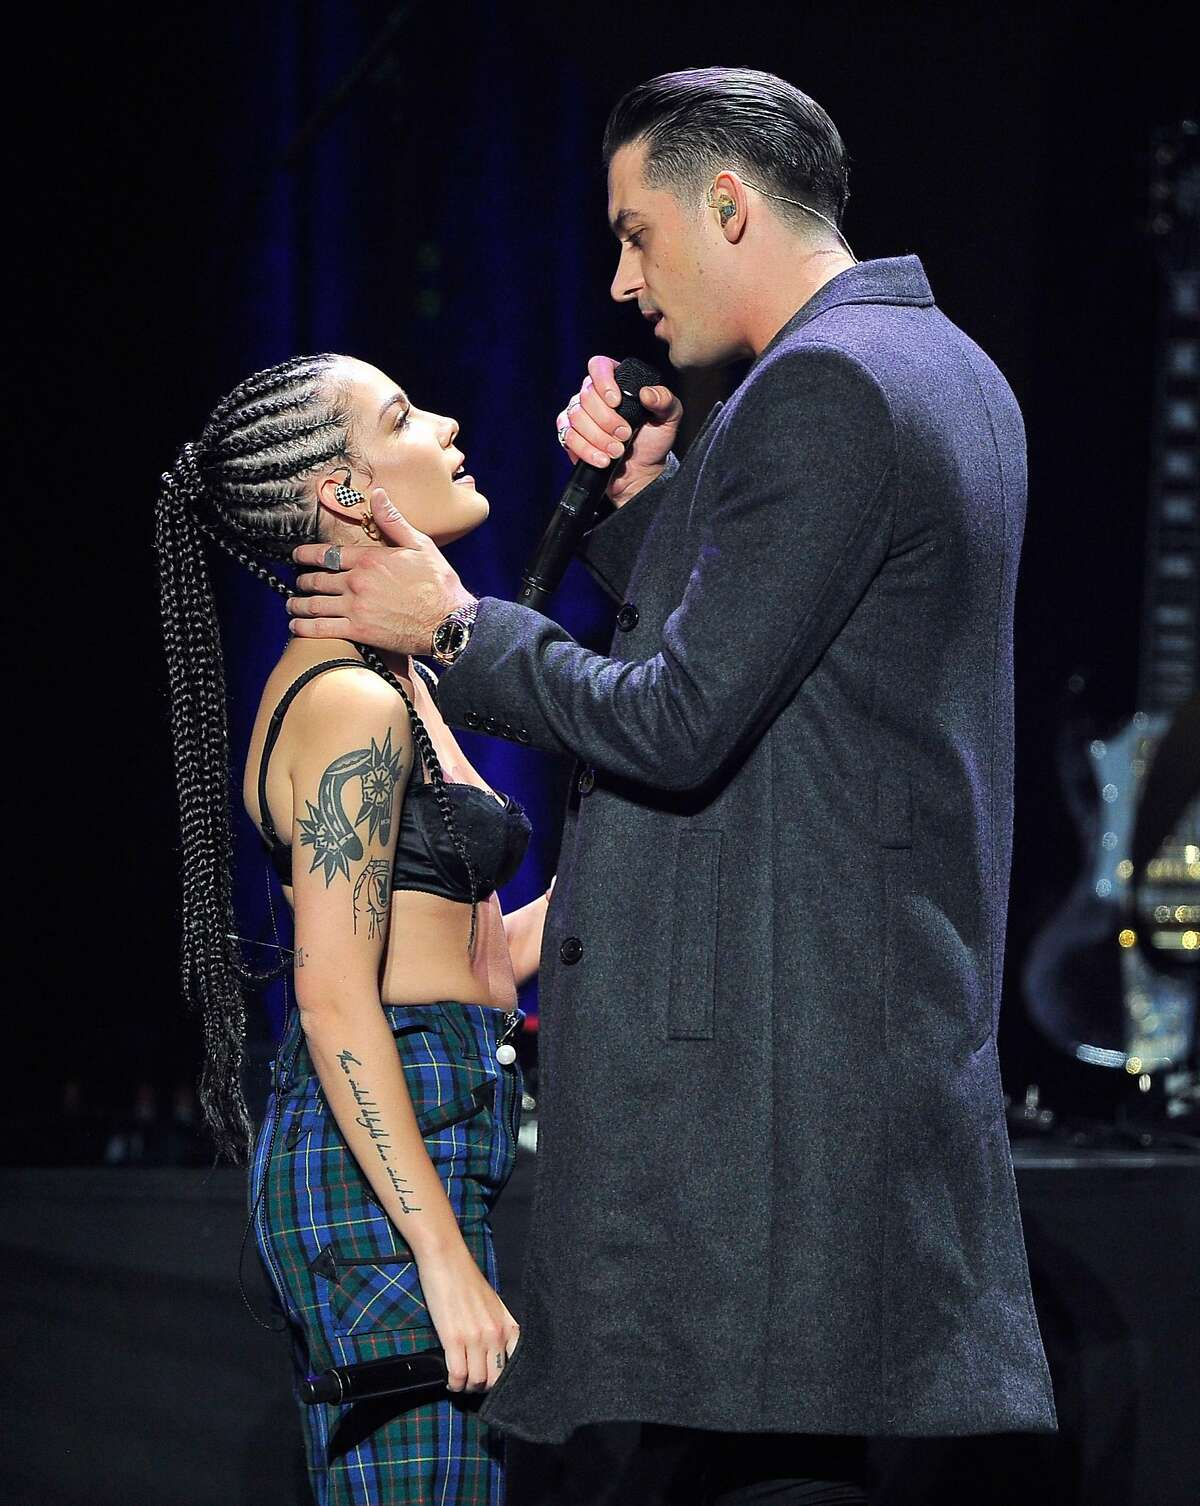 Halsey and G-Eazy at Wild 94.9's Jingle Ball at the SAP Center in San Jose.